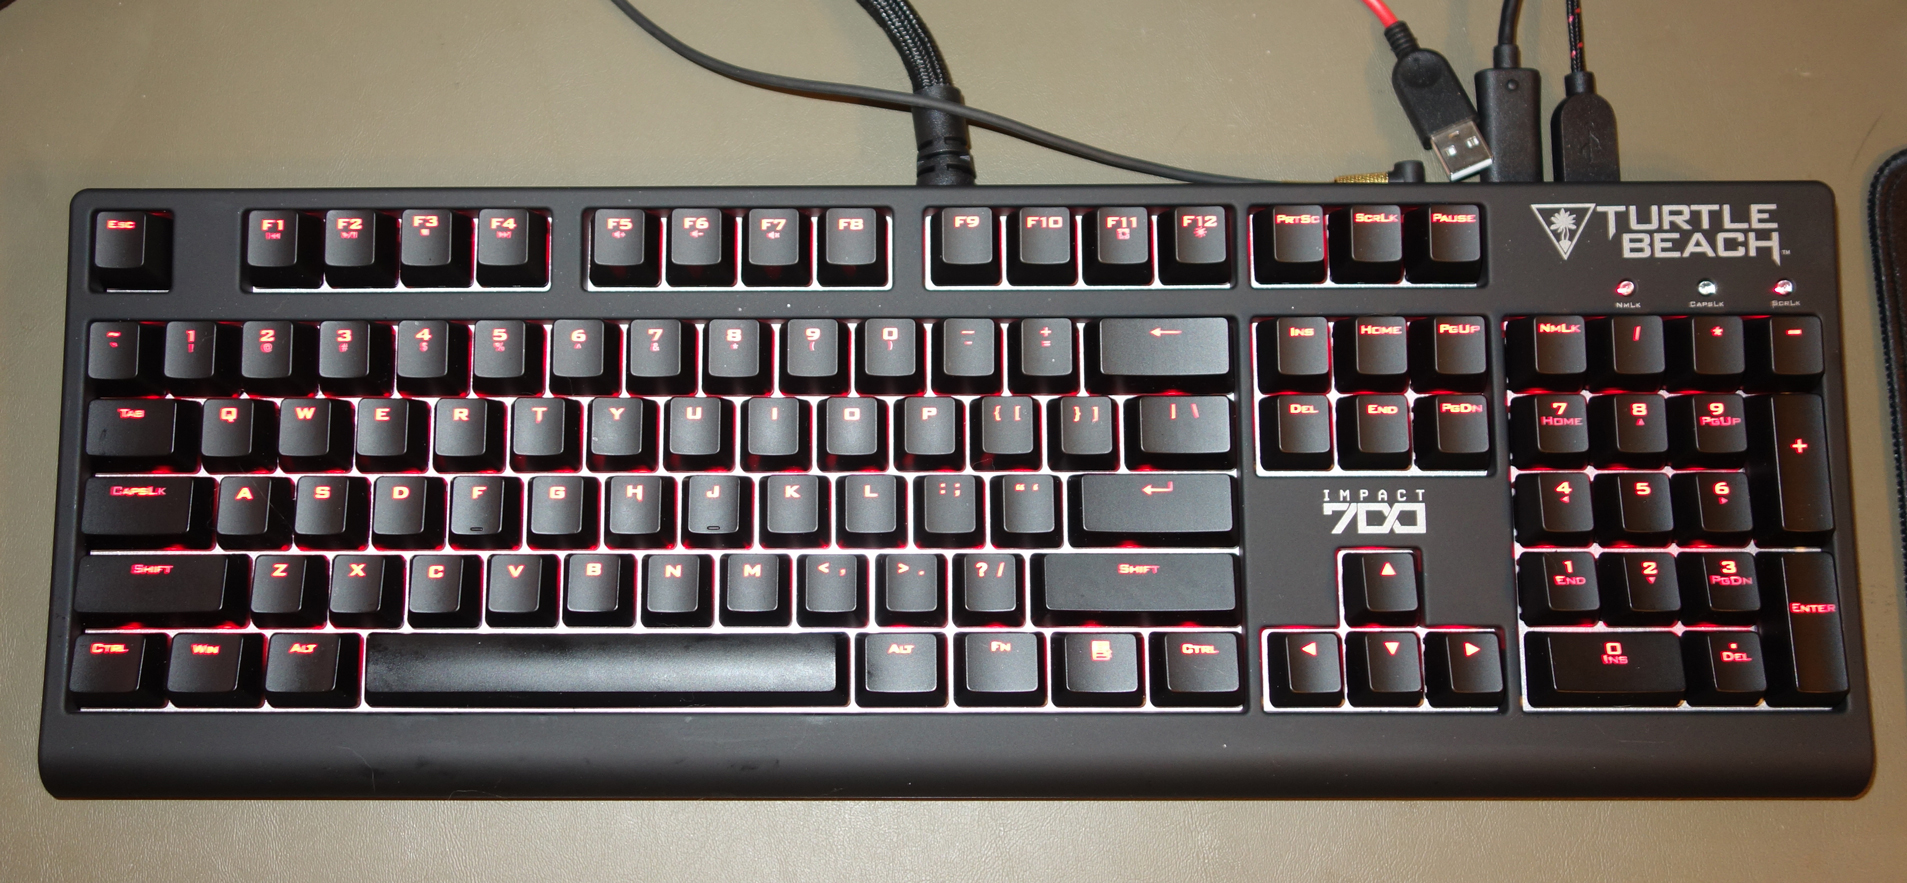 Turtle Beach IMPACT 700 mechanical keyboard